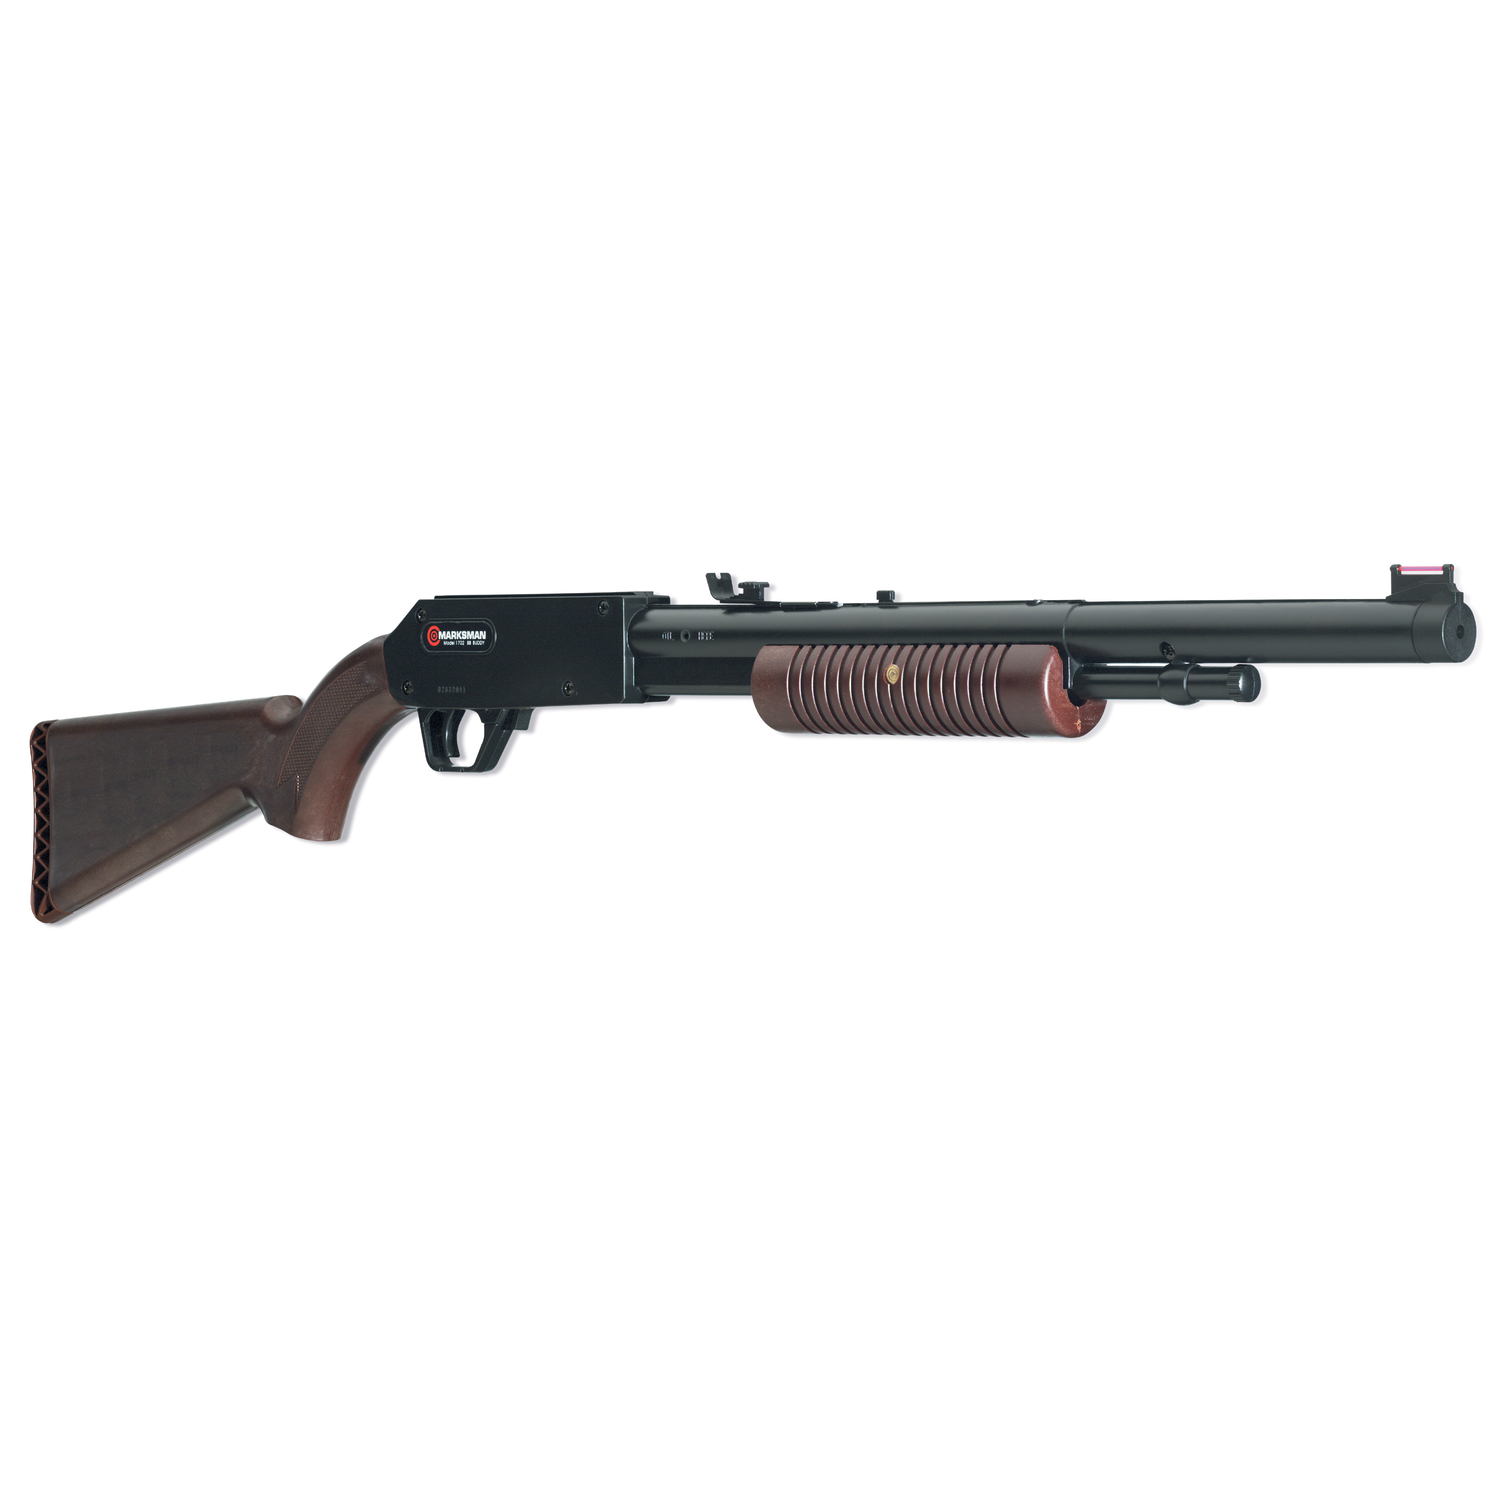 Marksman  0.177  275  Air Rifle  1